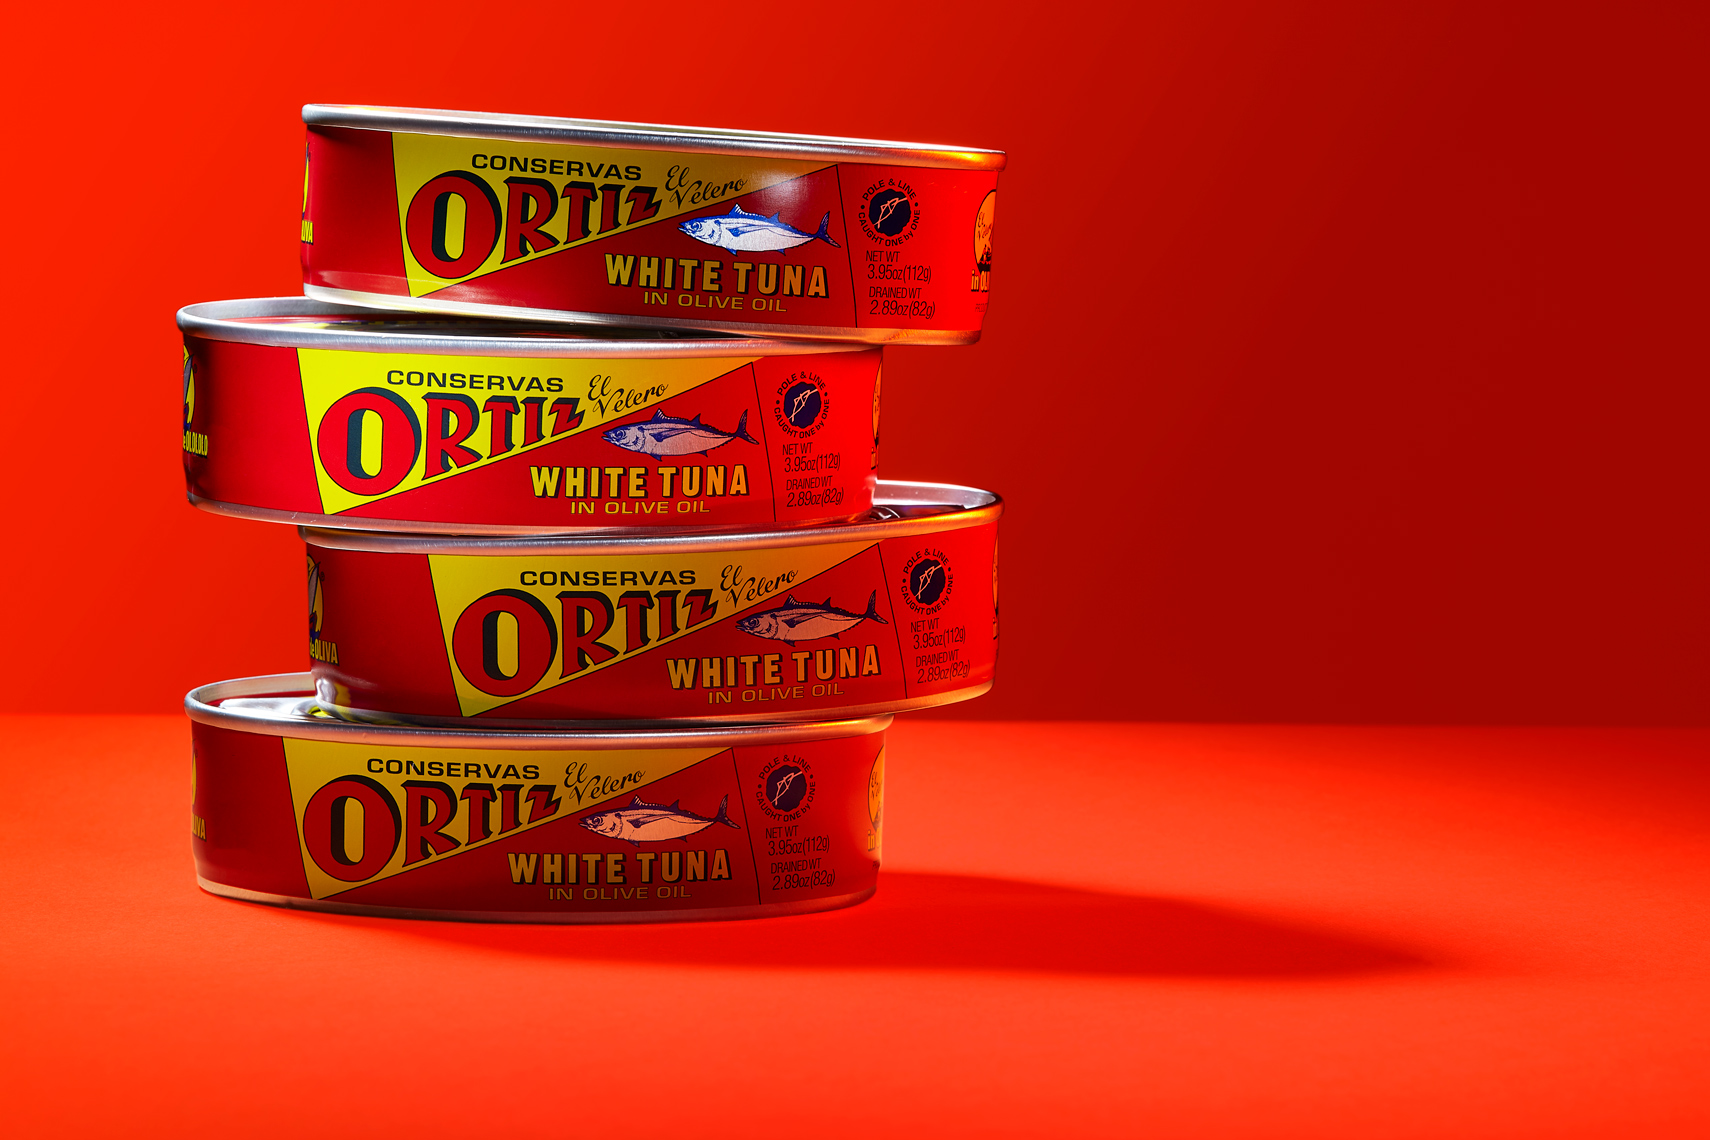 Ortiz-white-tuna-can-sardines-olive-oil-red-stack